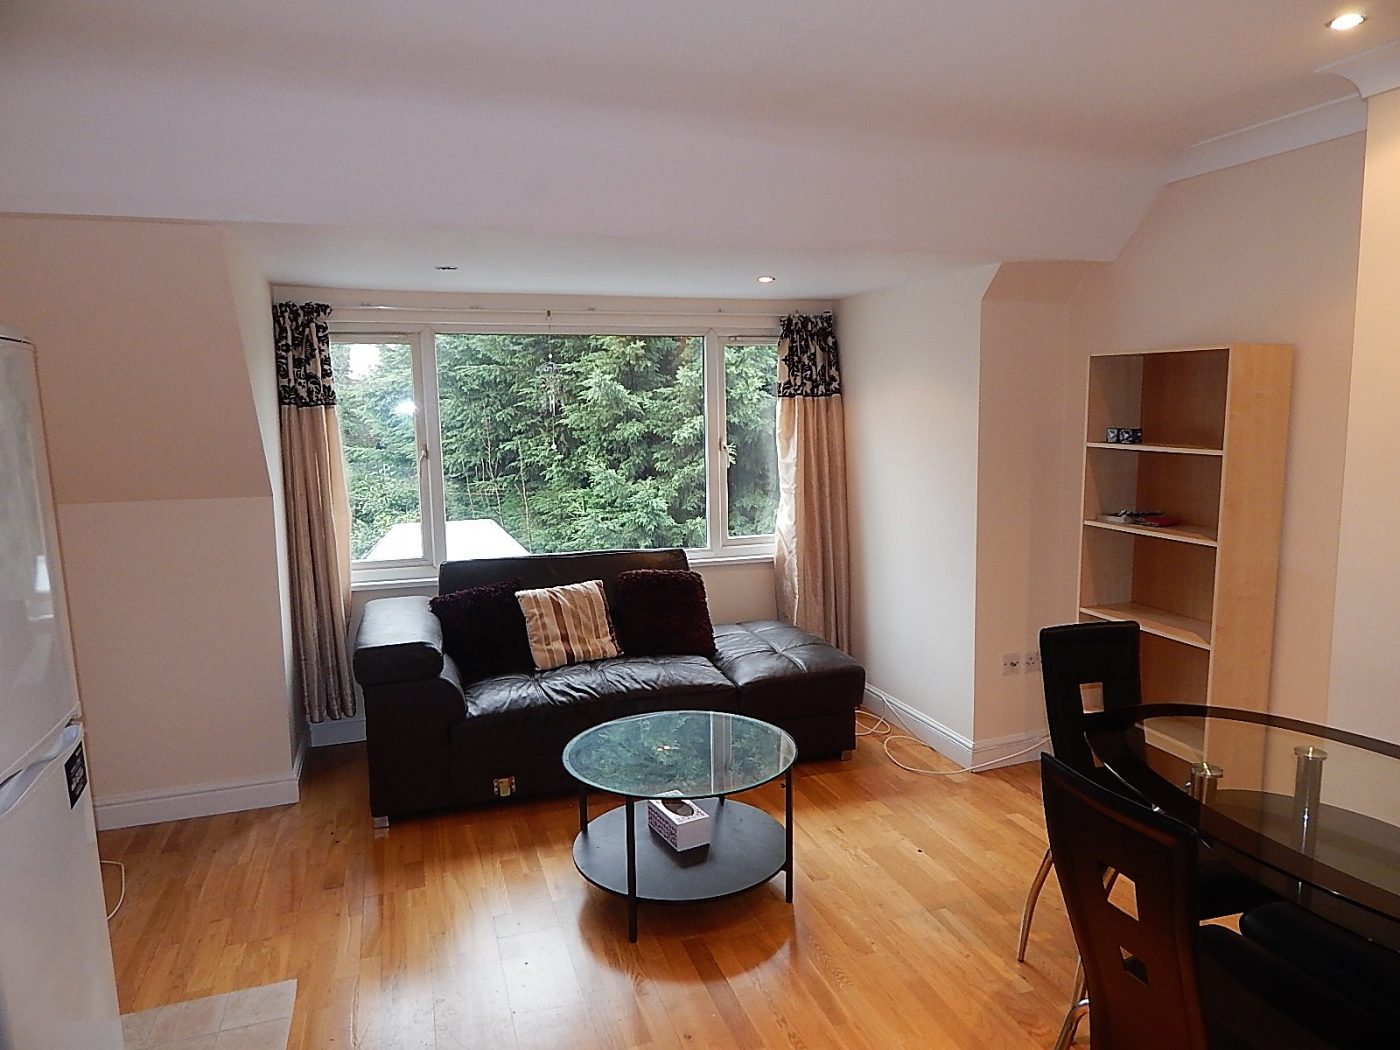 Finchley Road, NW11 - 1 bedroom flat